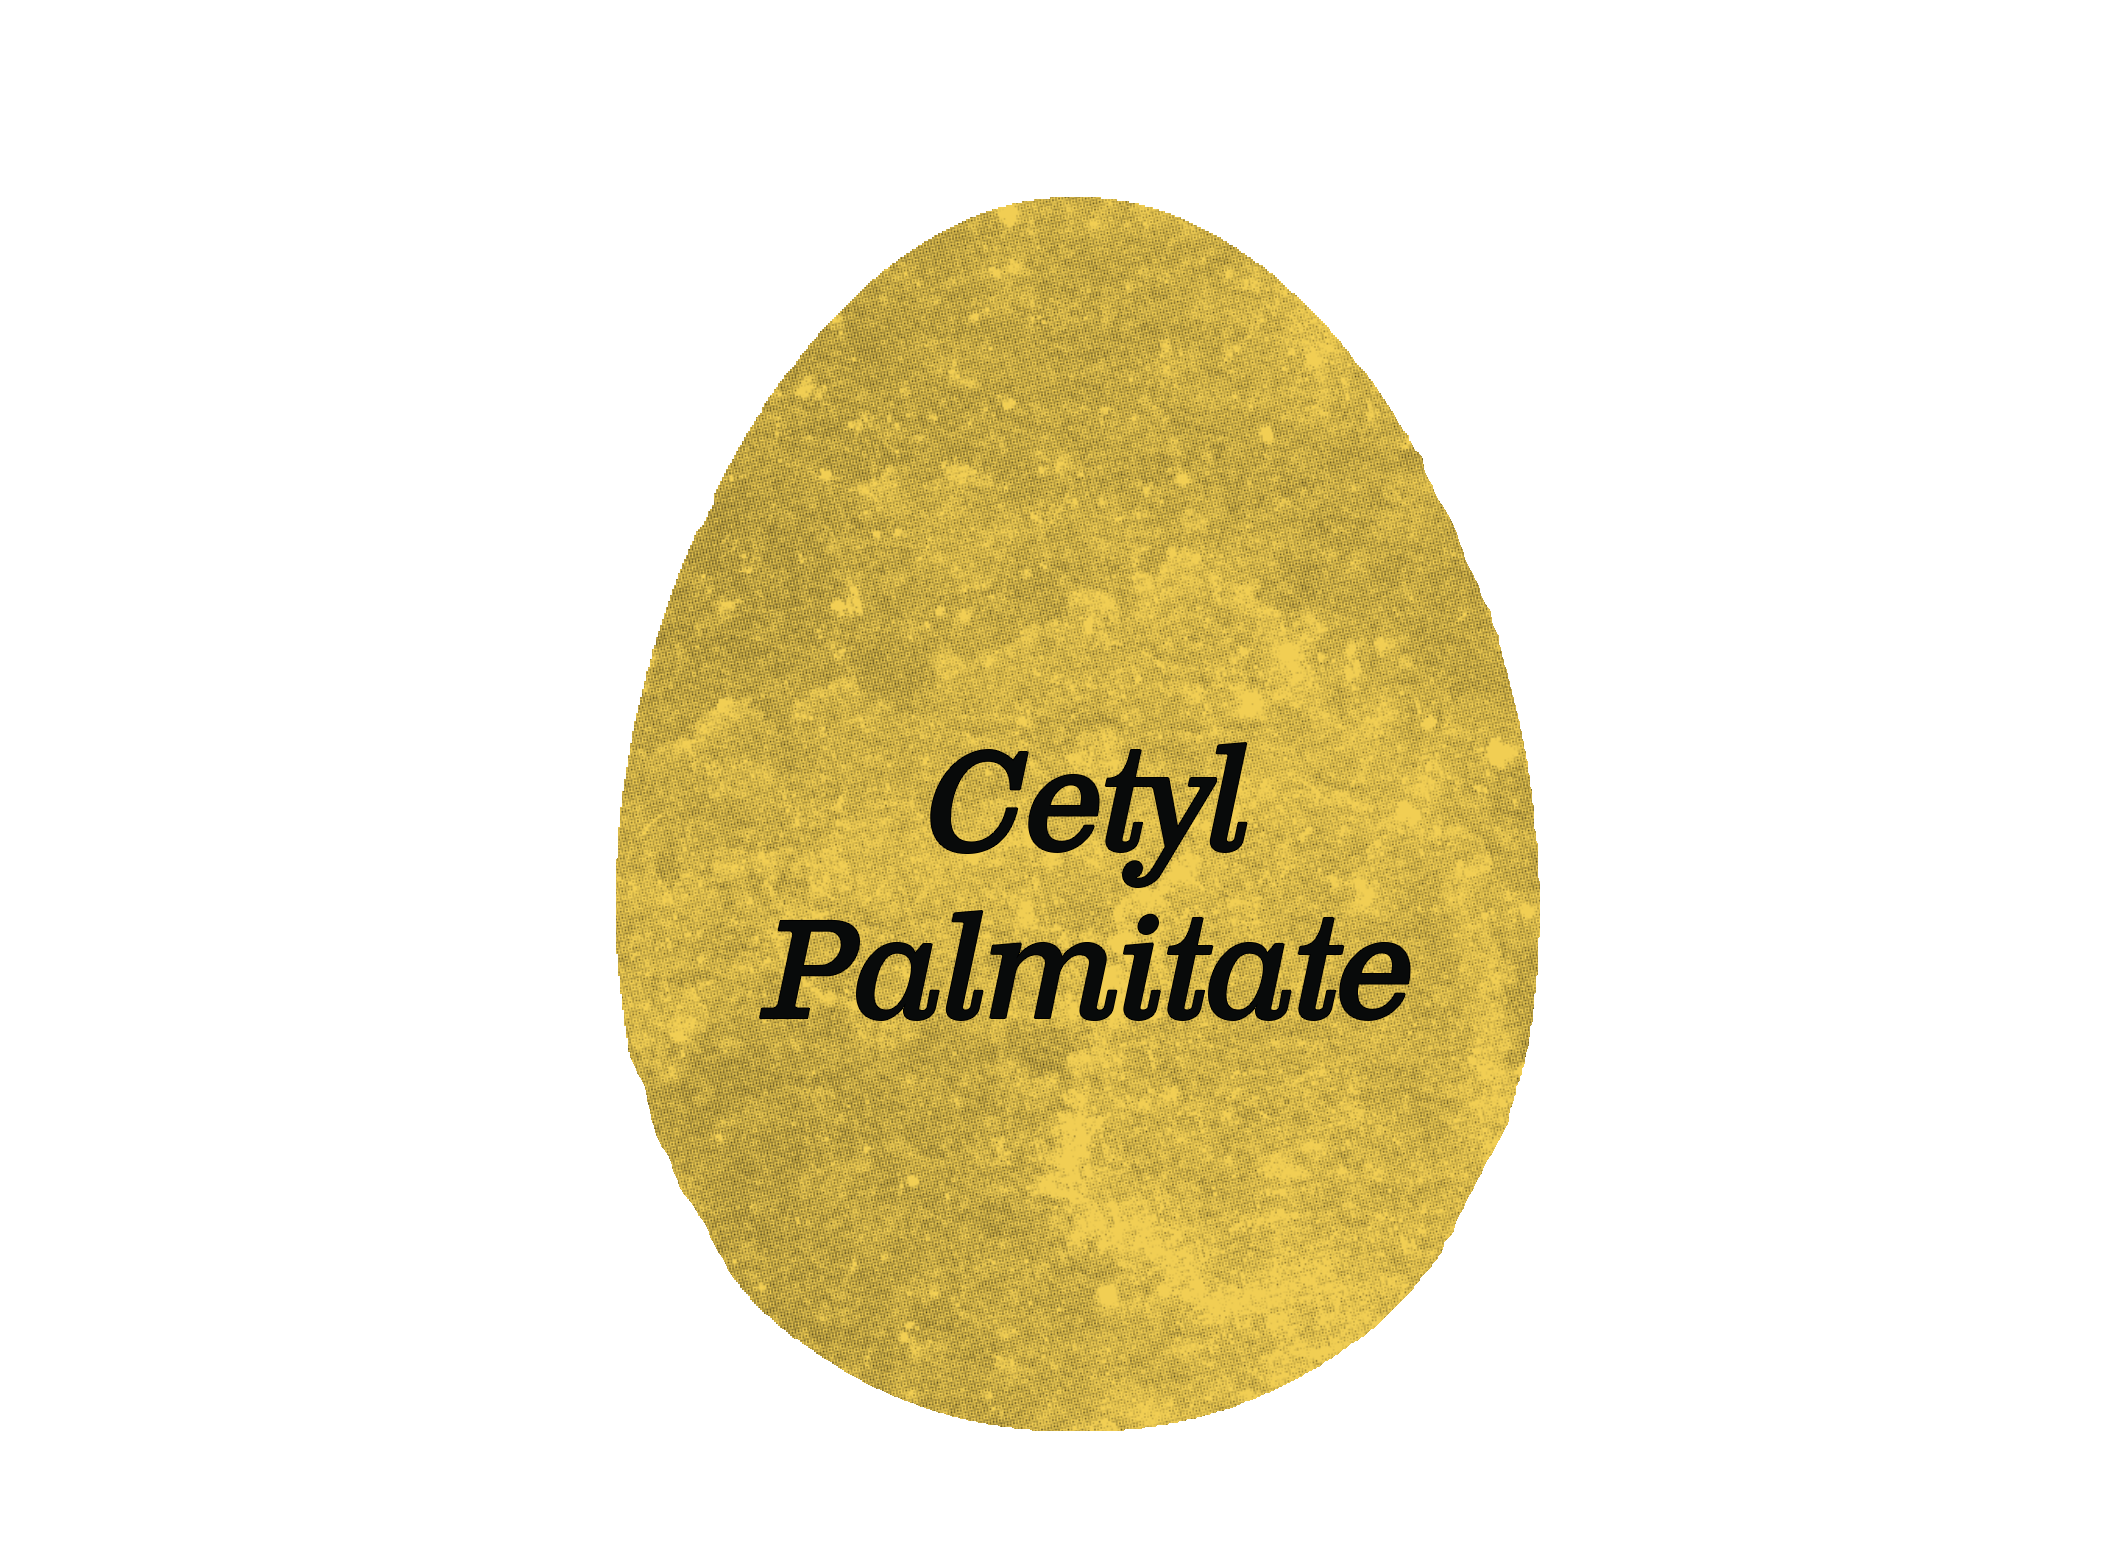 CetylPalmitate-SelvaBeat.png